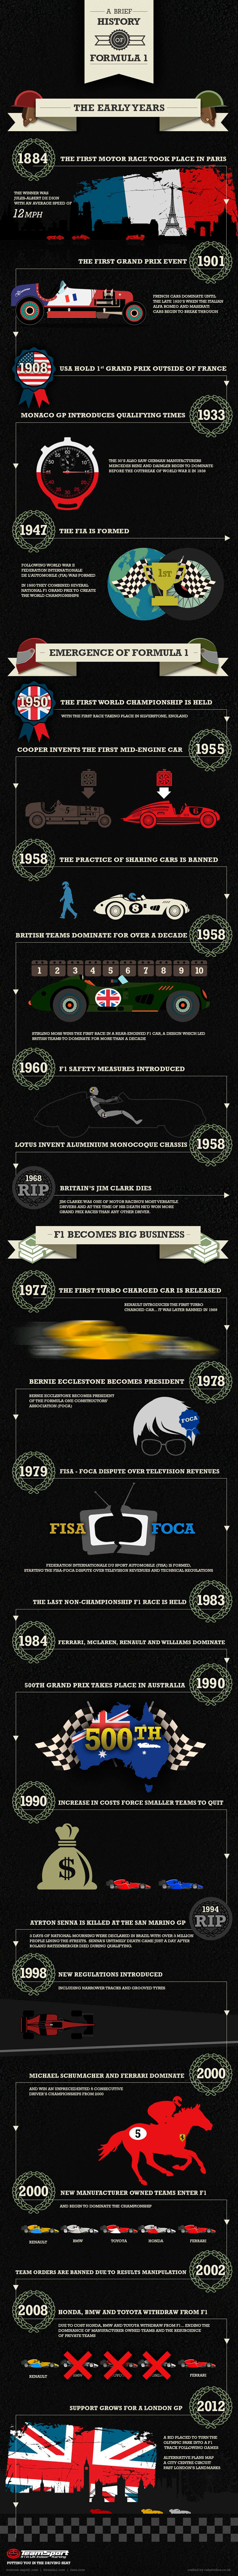 A Brief History of Formula 1